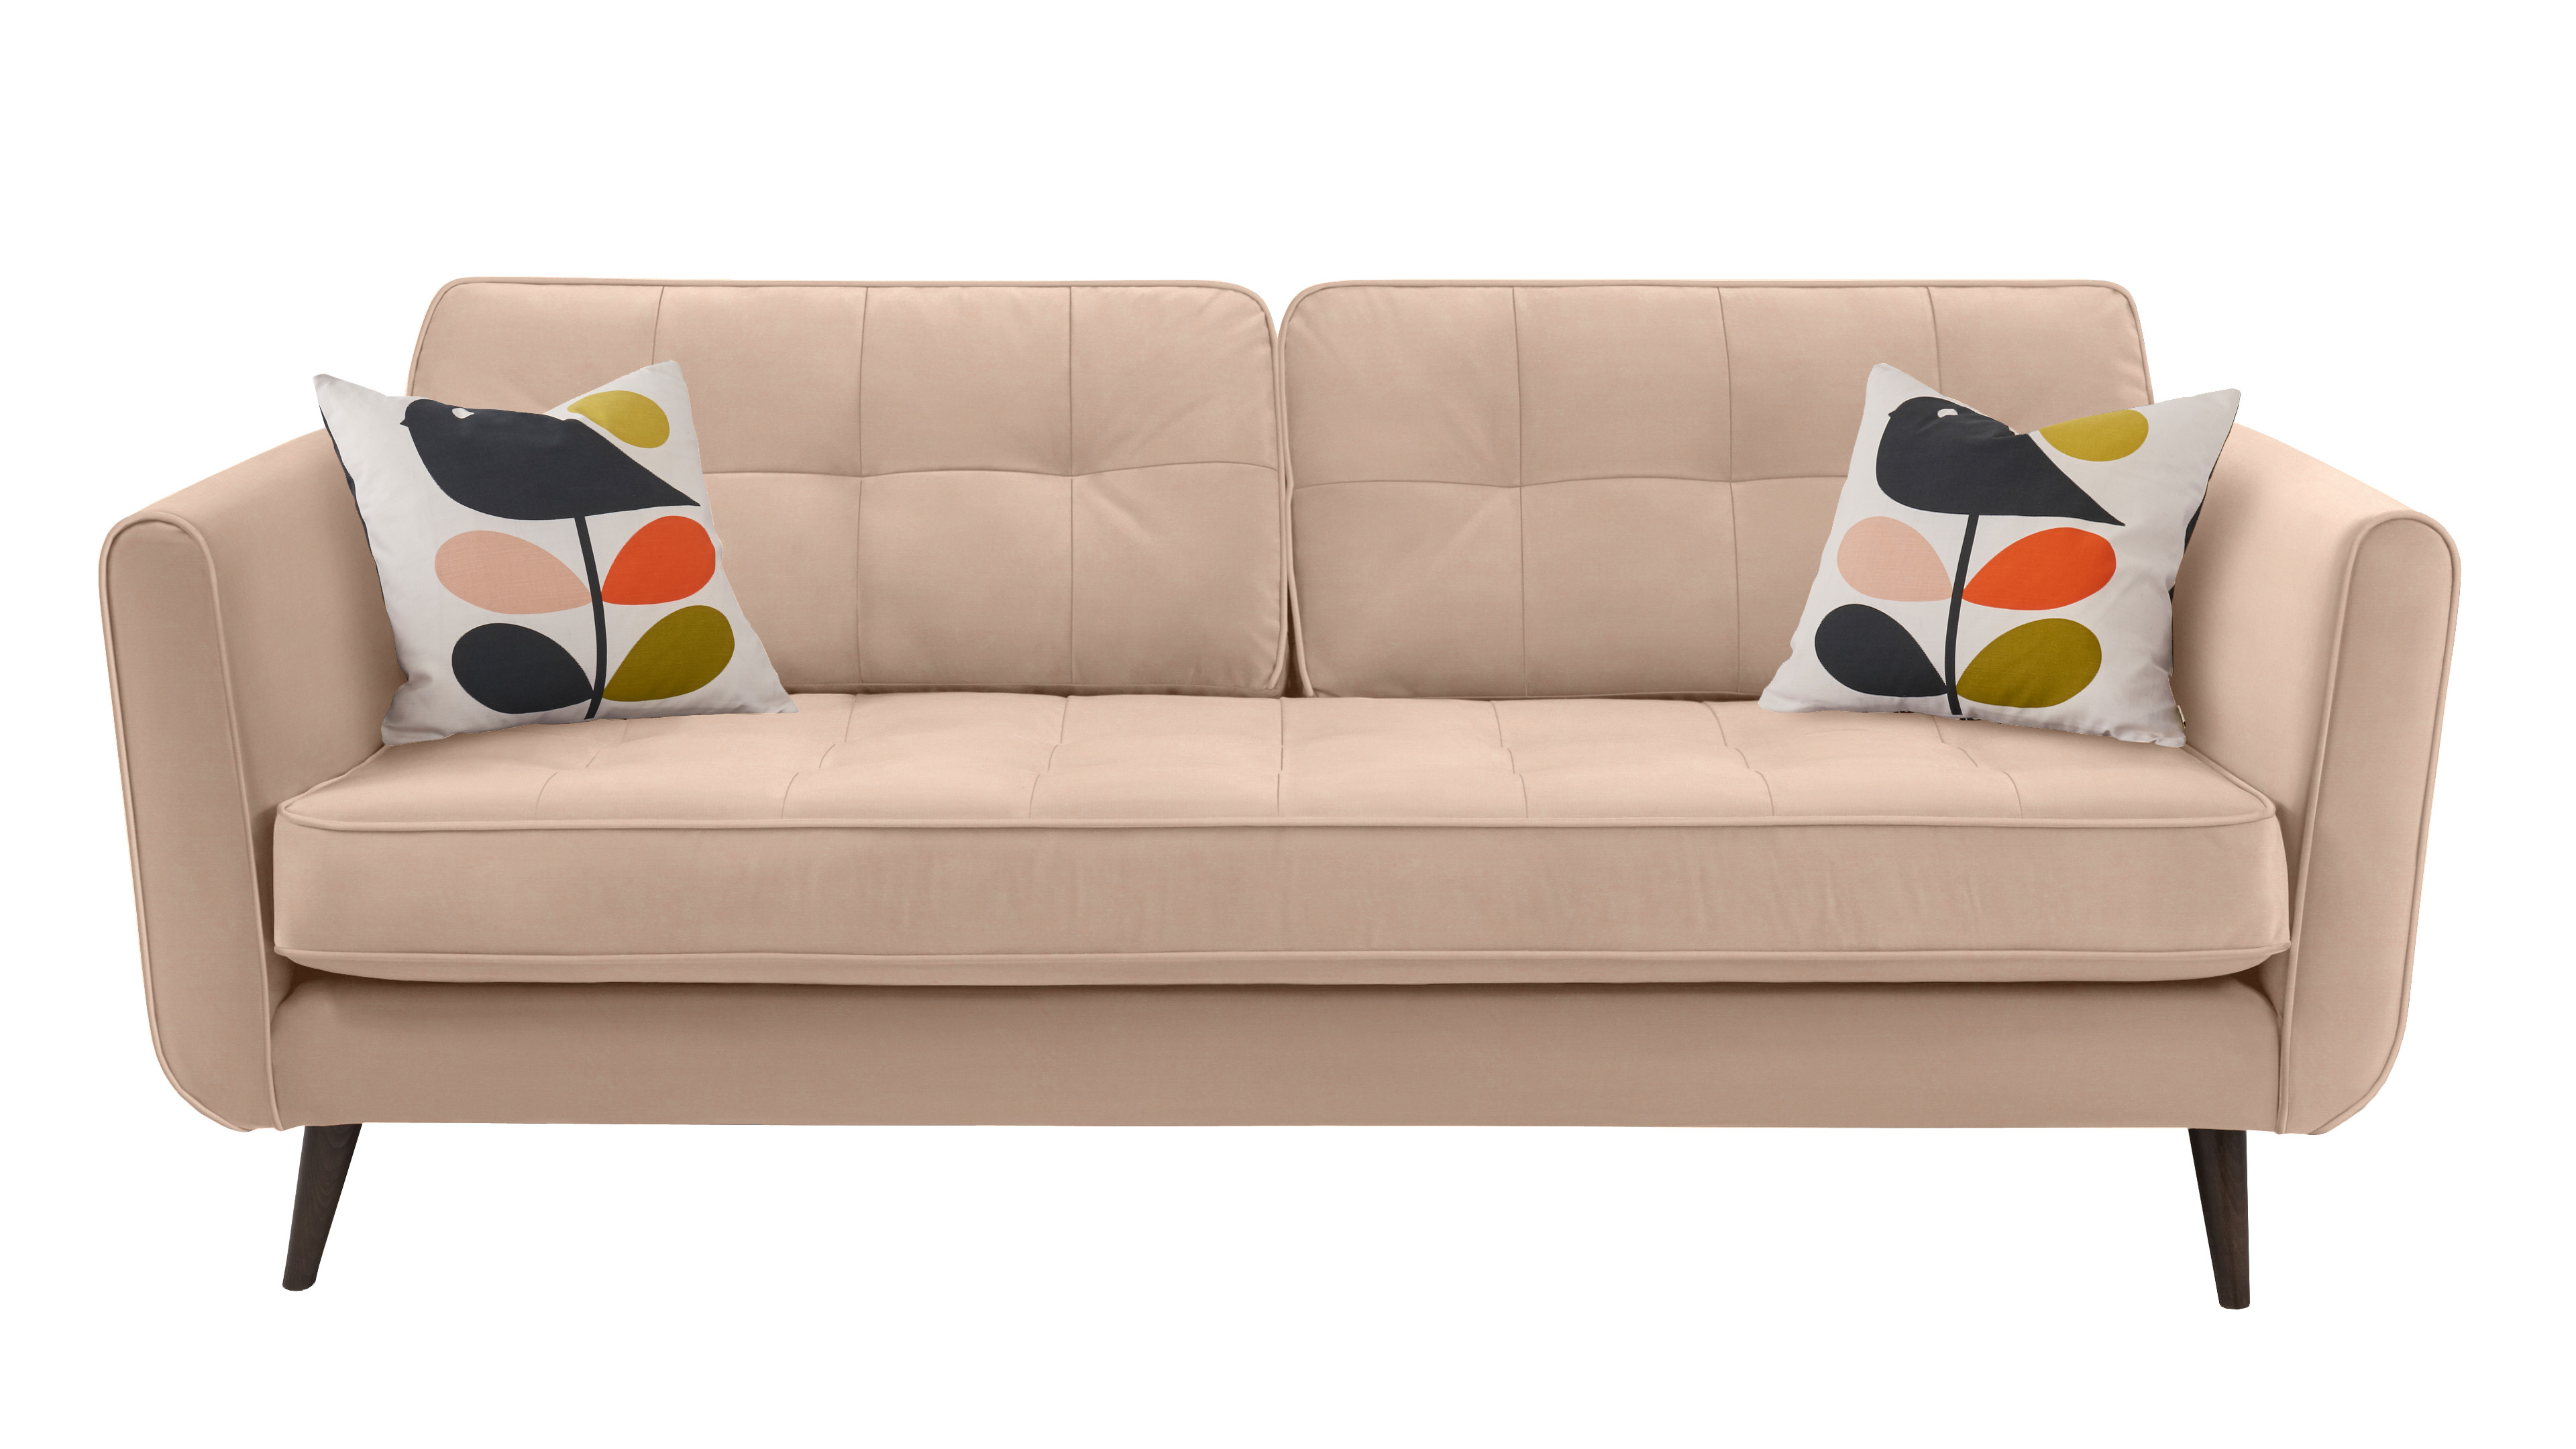 Ivy large Sofa Glyde